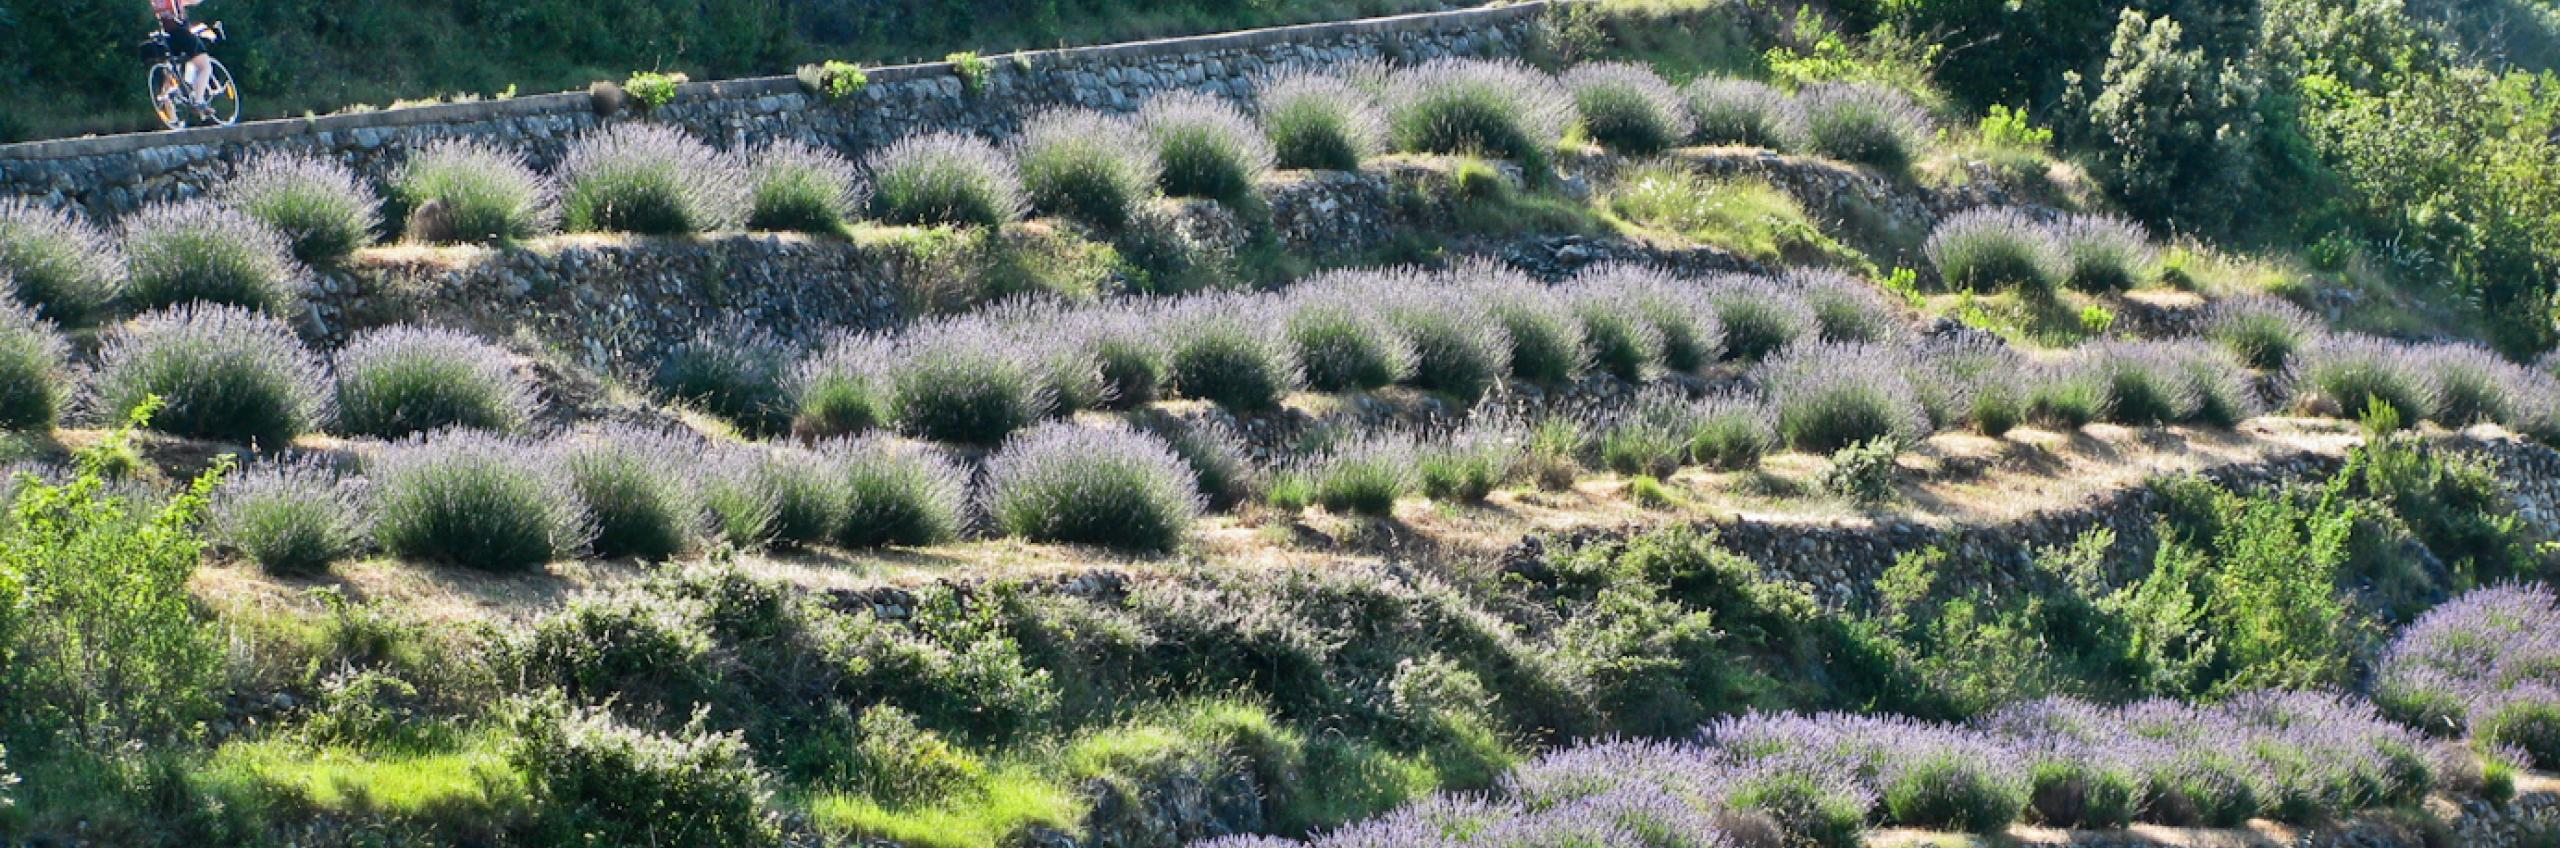 HEALTH & SCENT - Bicycling immersed in Lavander